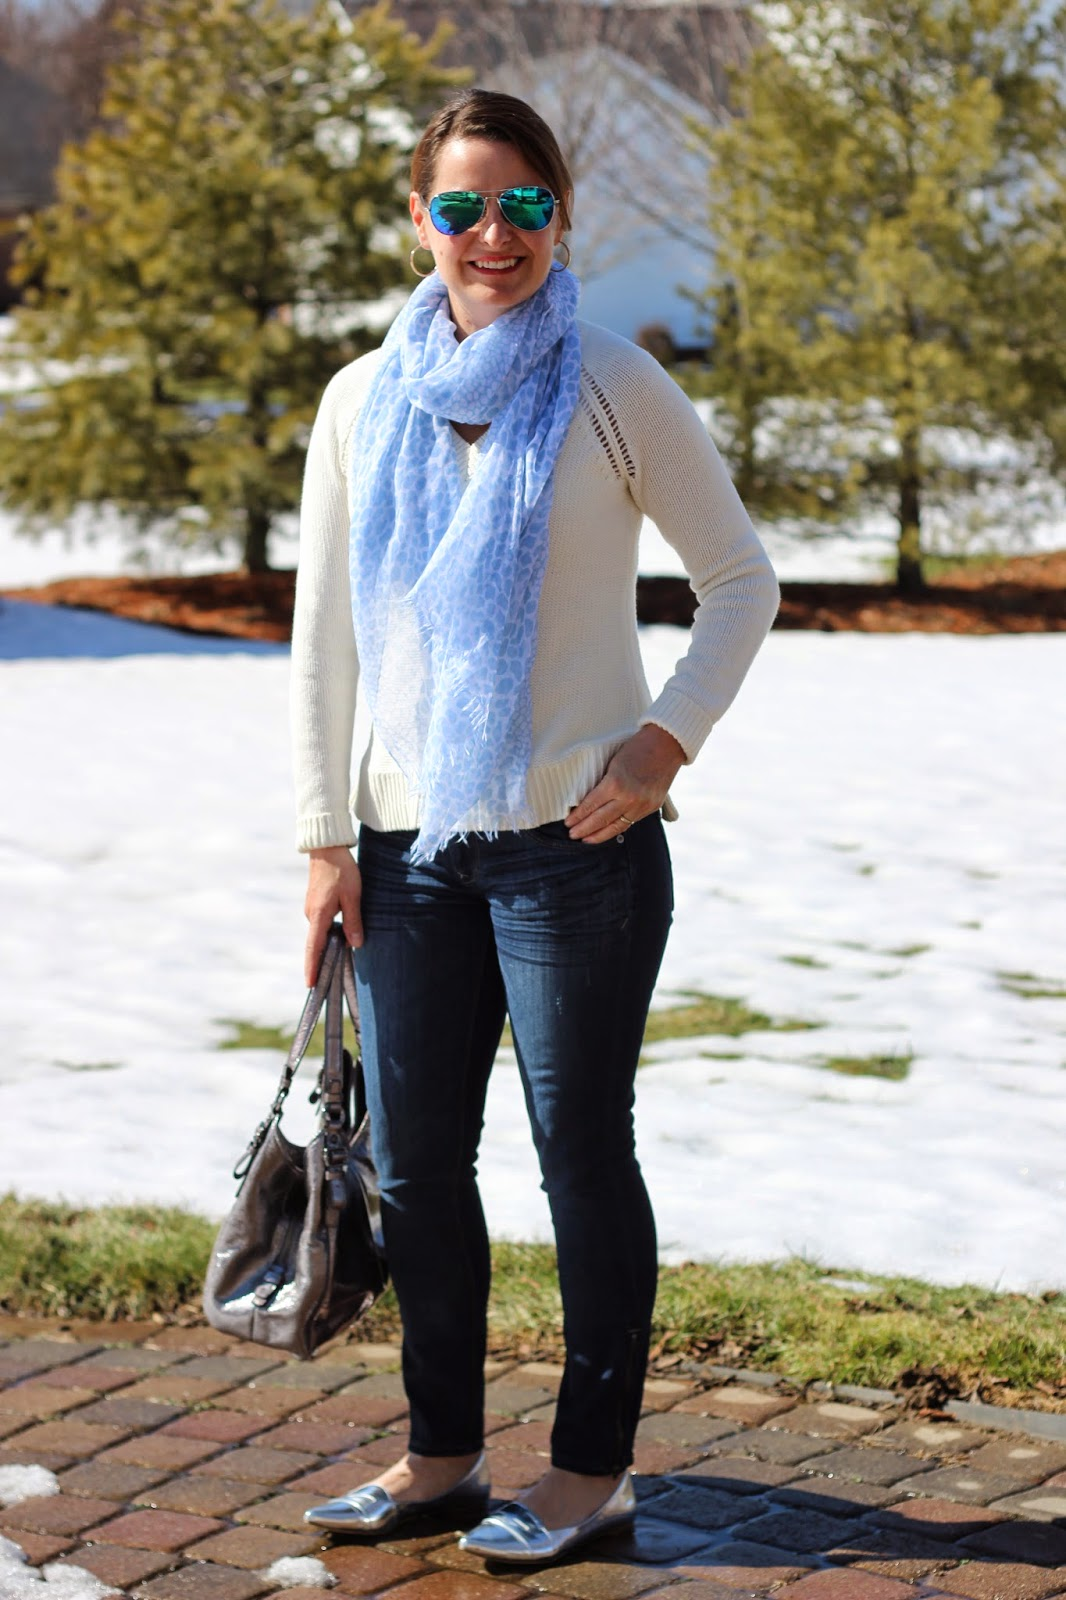 Silver, blue, and white spring outfit